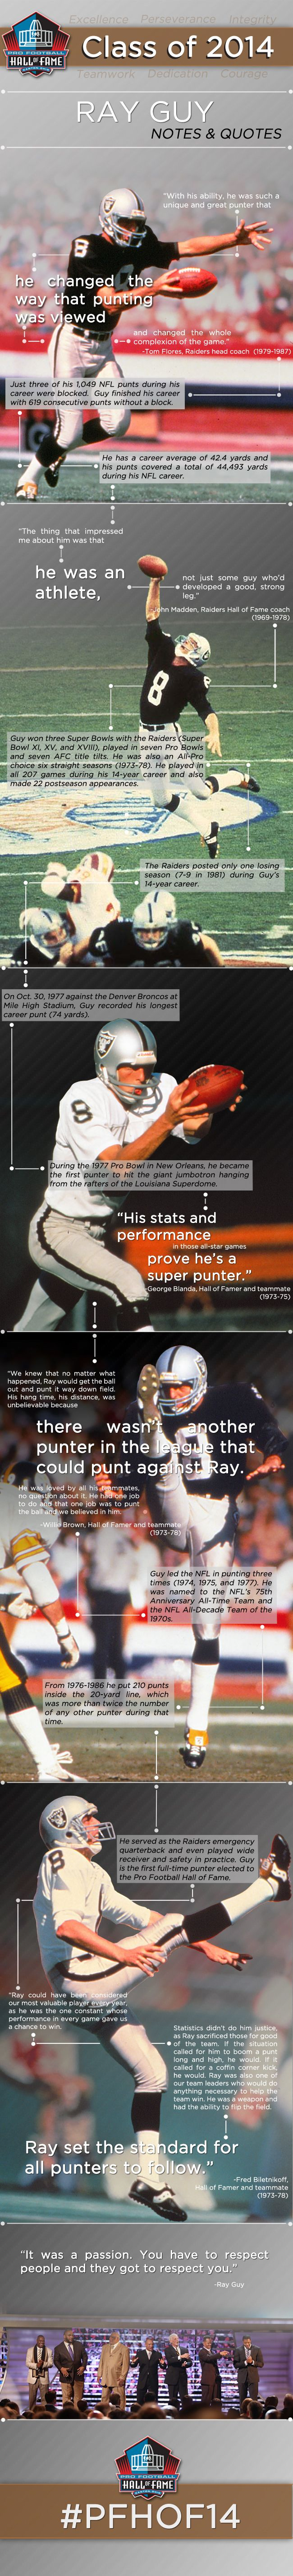 [Inforgraphic] Notes & Quotes from the Hall of Fame career of Oakland #Raiders punter Ray Guy.